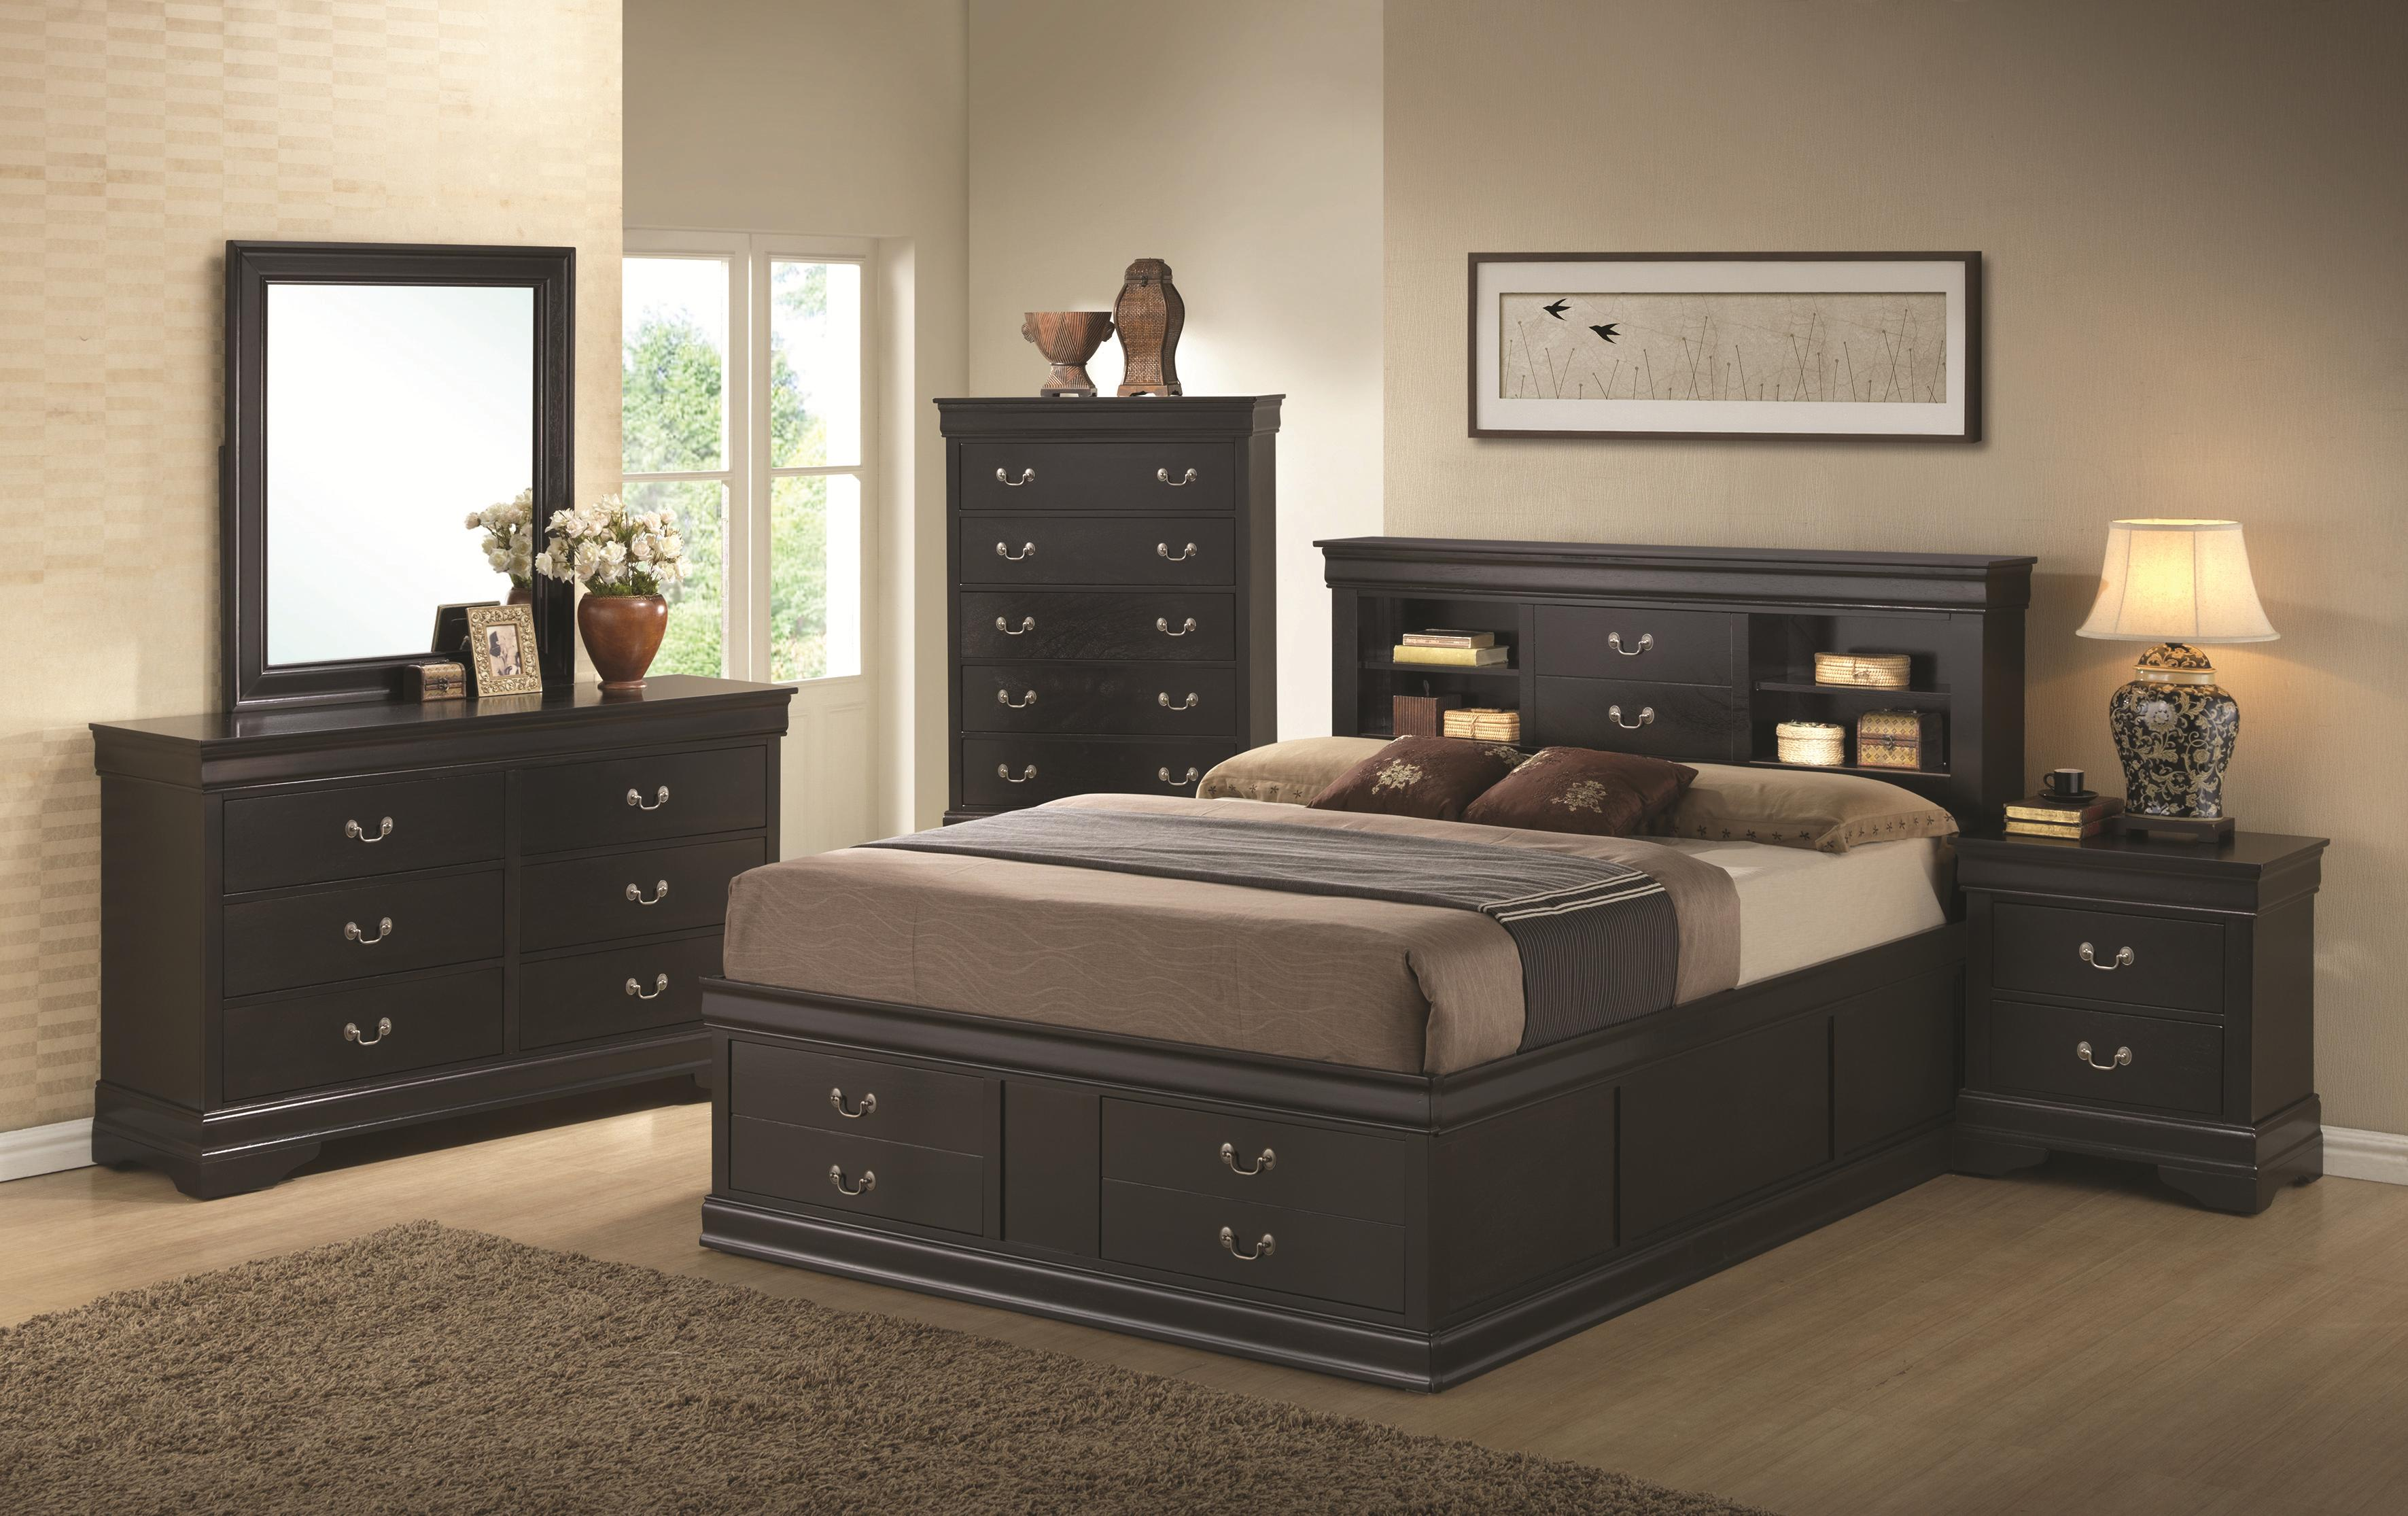 Coaster Louis Philippe Queen Bedroom Group | Value City Furniture ...